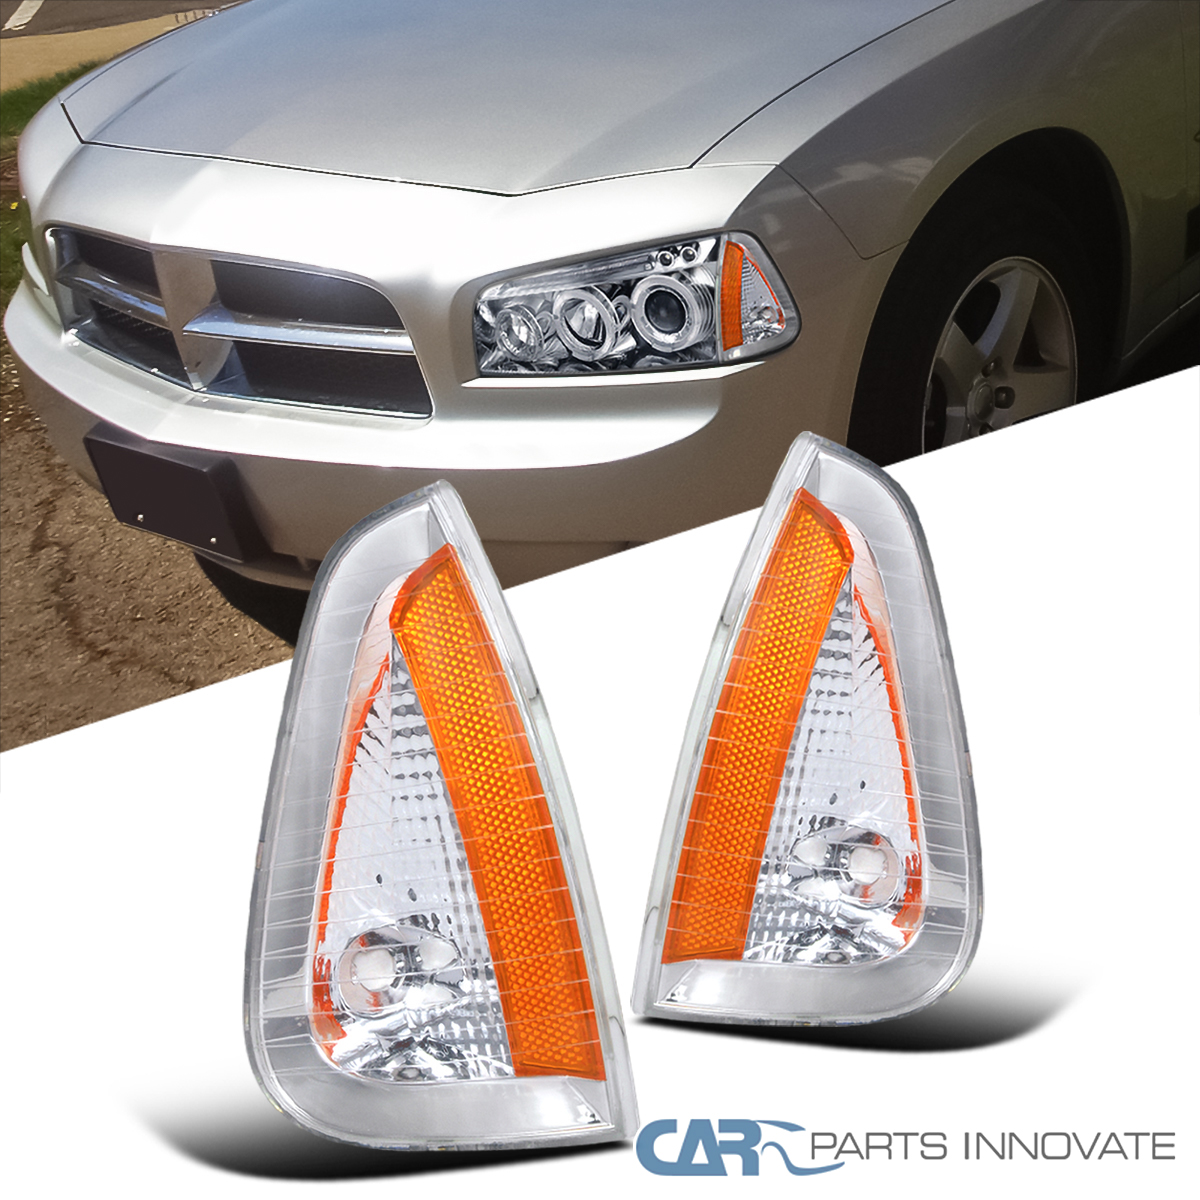 Details about For Dodge 06-10 Charger Clear Lens Front Turn Signal Lamps  Corner Lights Pair